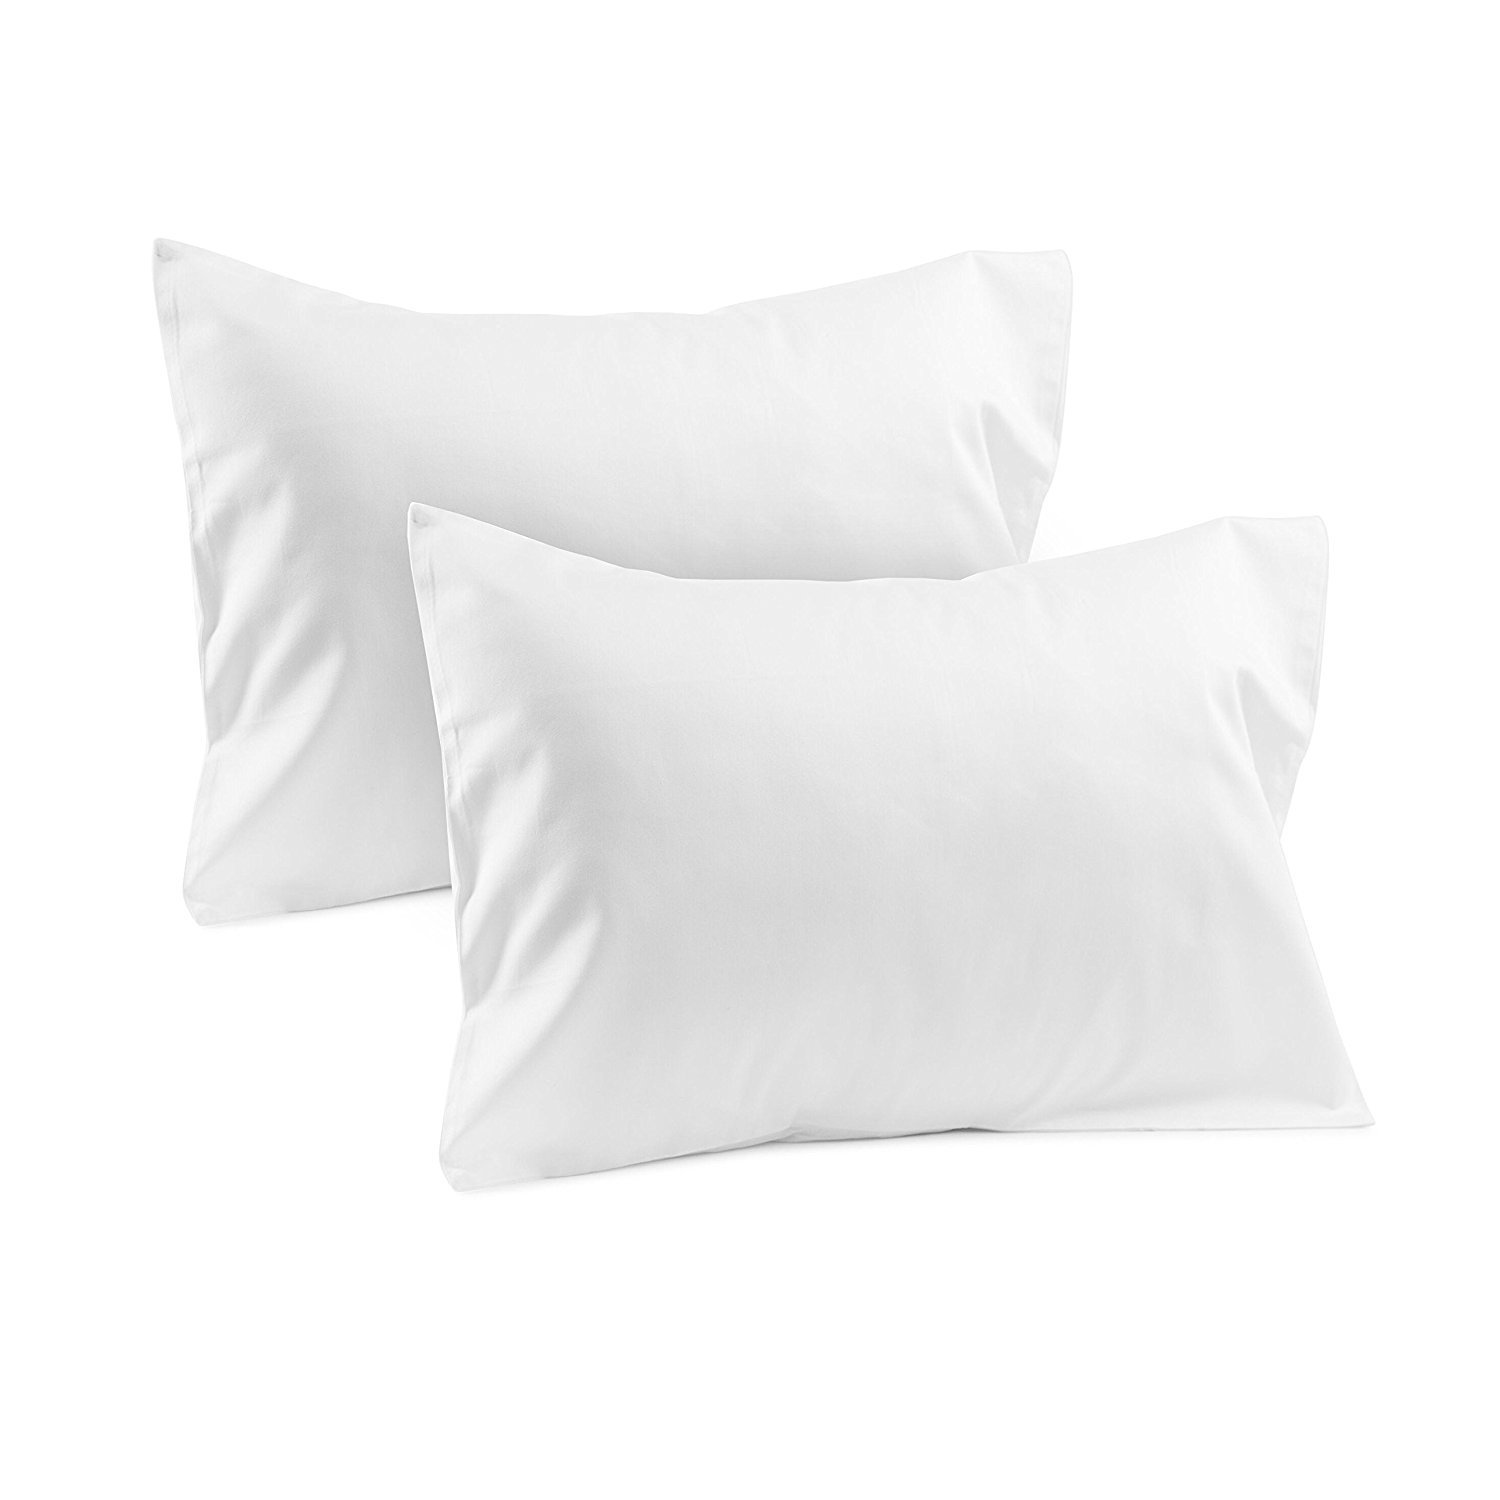 Ocean Deal Kid's - Toddler - Travel Set of 2 Pillow case 14x20 Size White Solid, with 100% Egyptian Cotton - Zipper Closer